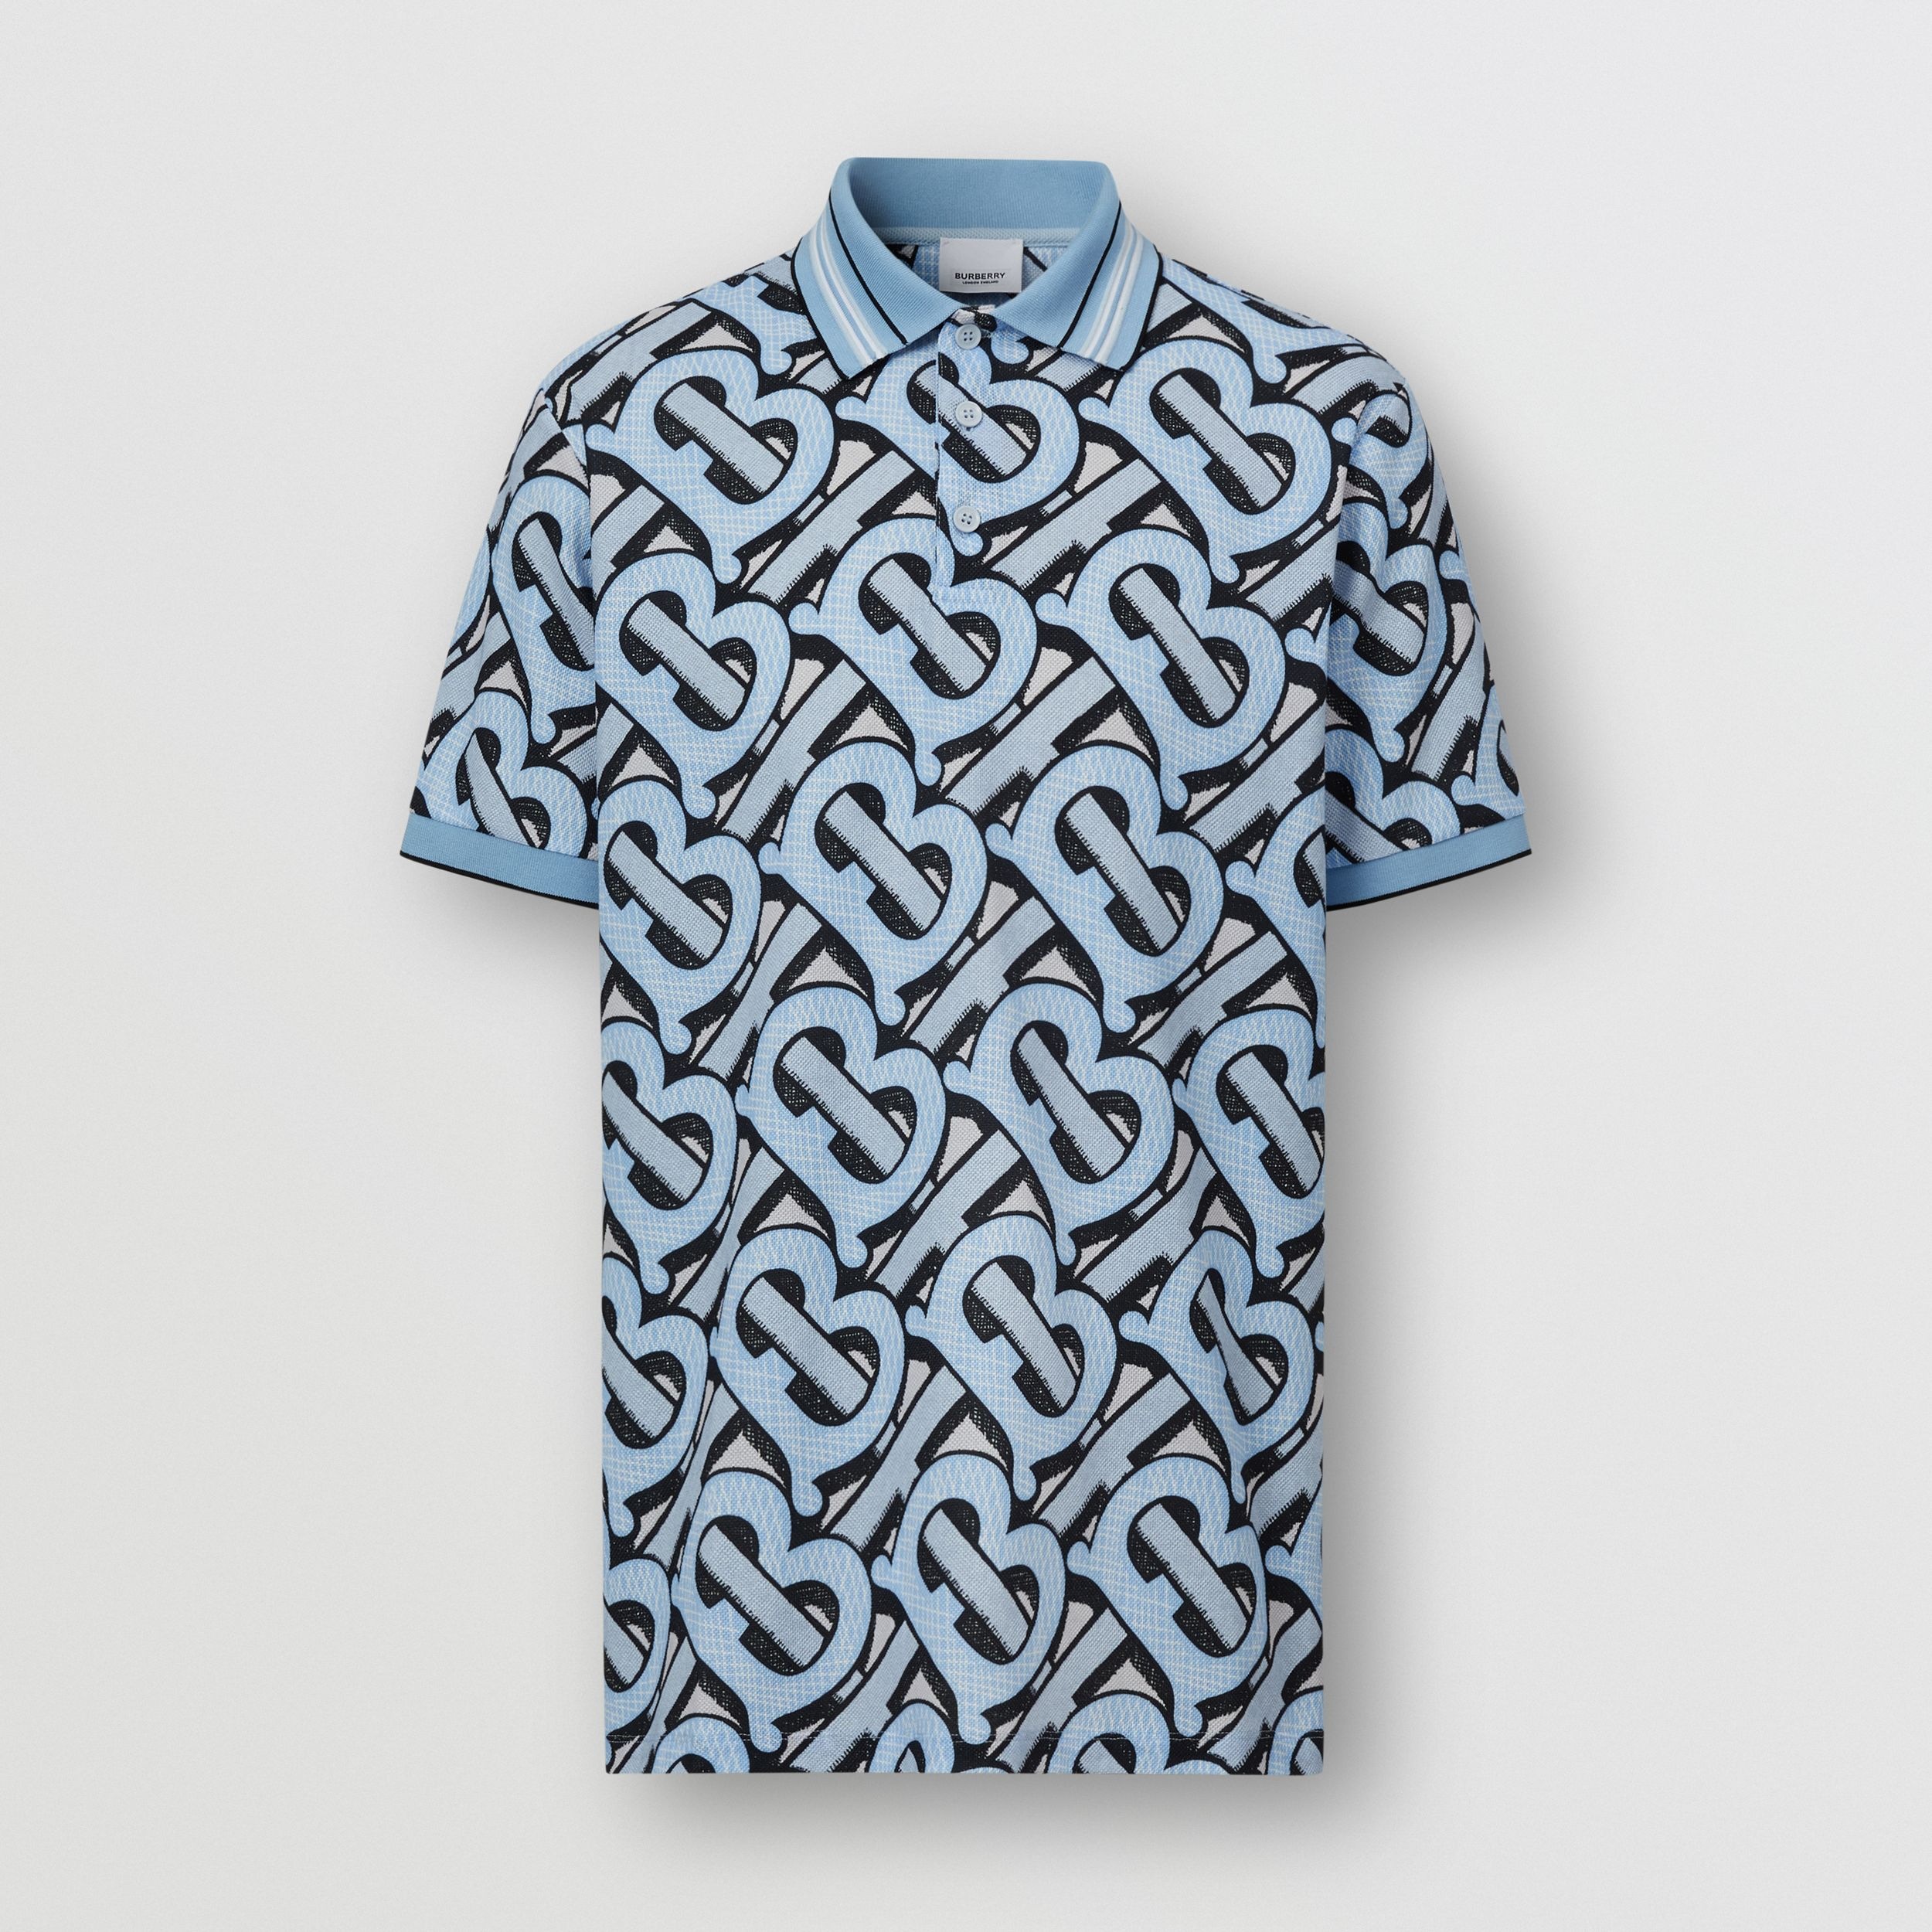 Monogram Print Cotton Piqué Polo Shirt – Unisex in Pale Azure | Burberry - 1